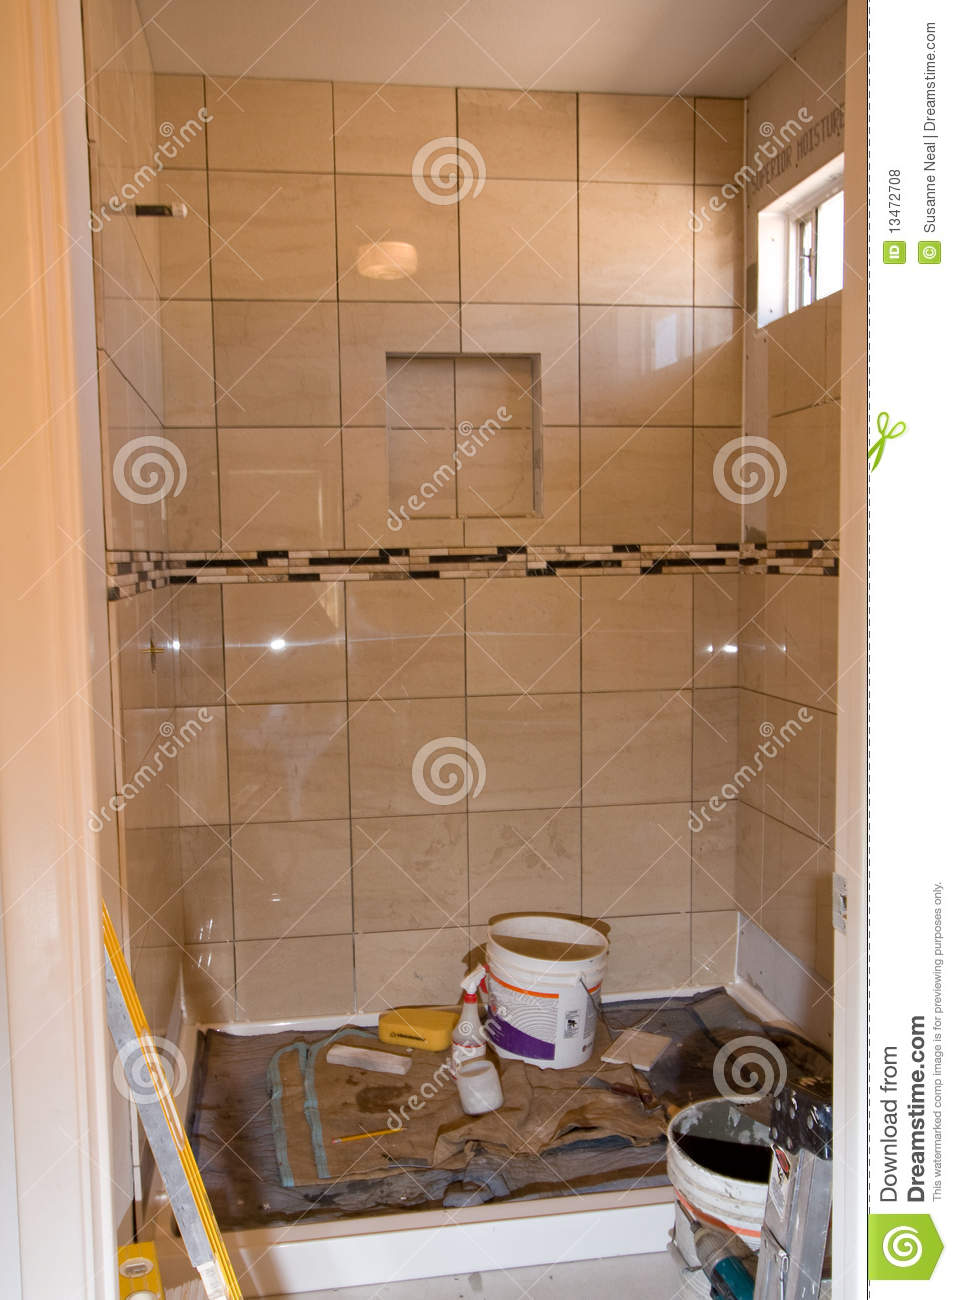 bathroom shower tile remodel royalty free stock photos - image